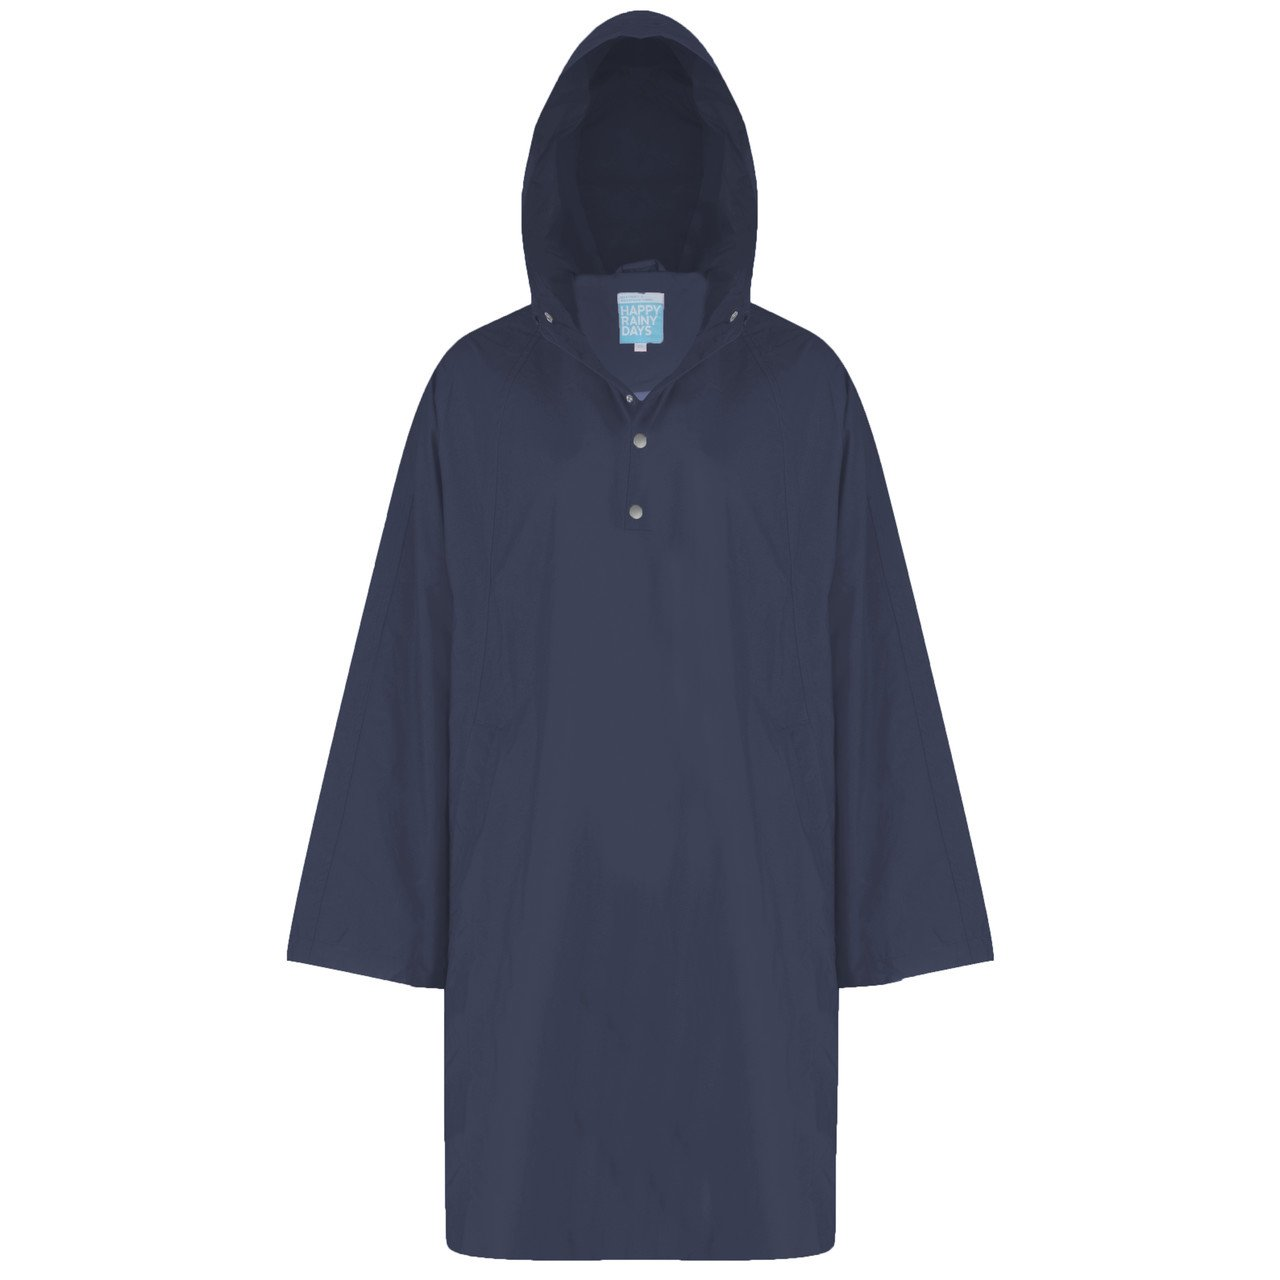 Navy bluee Happy Rainy Days Women's Poncho Cape